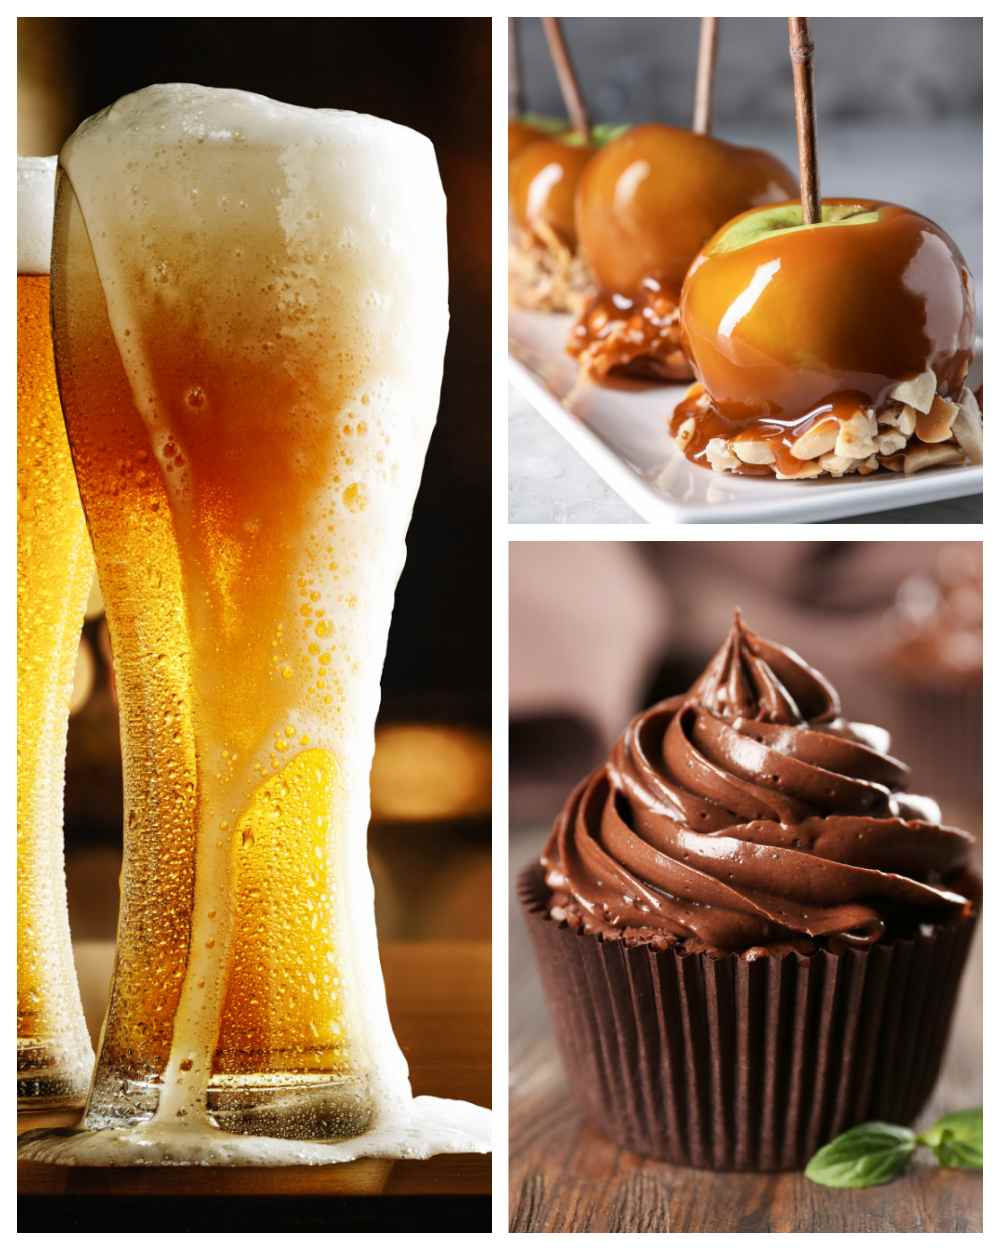 Gasses of beer. tray of caramel apples, and chocolate cupcake.